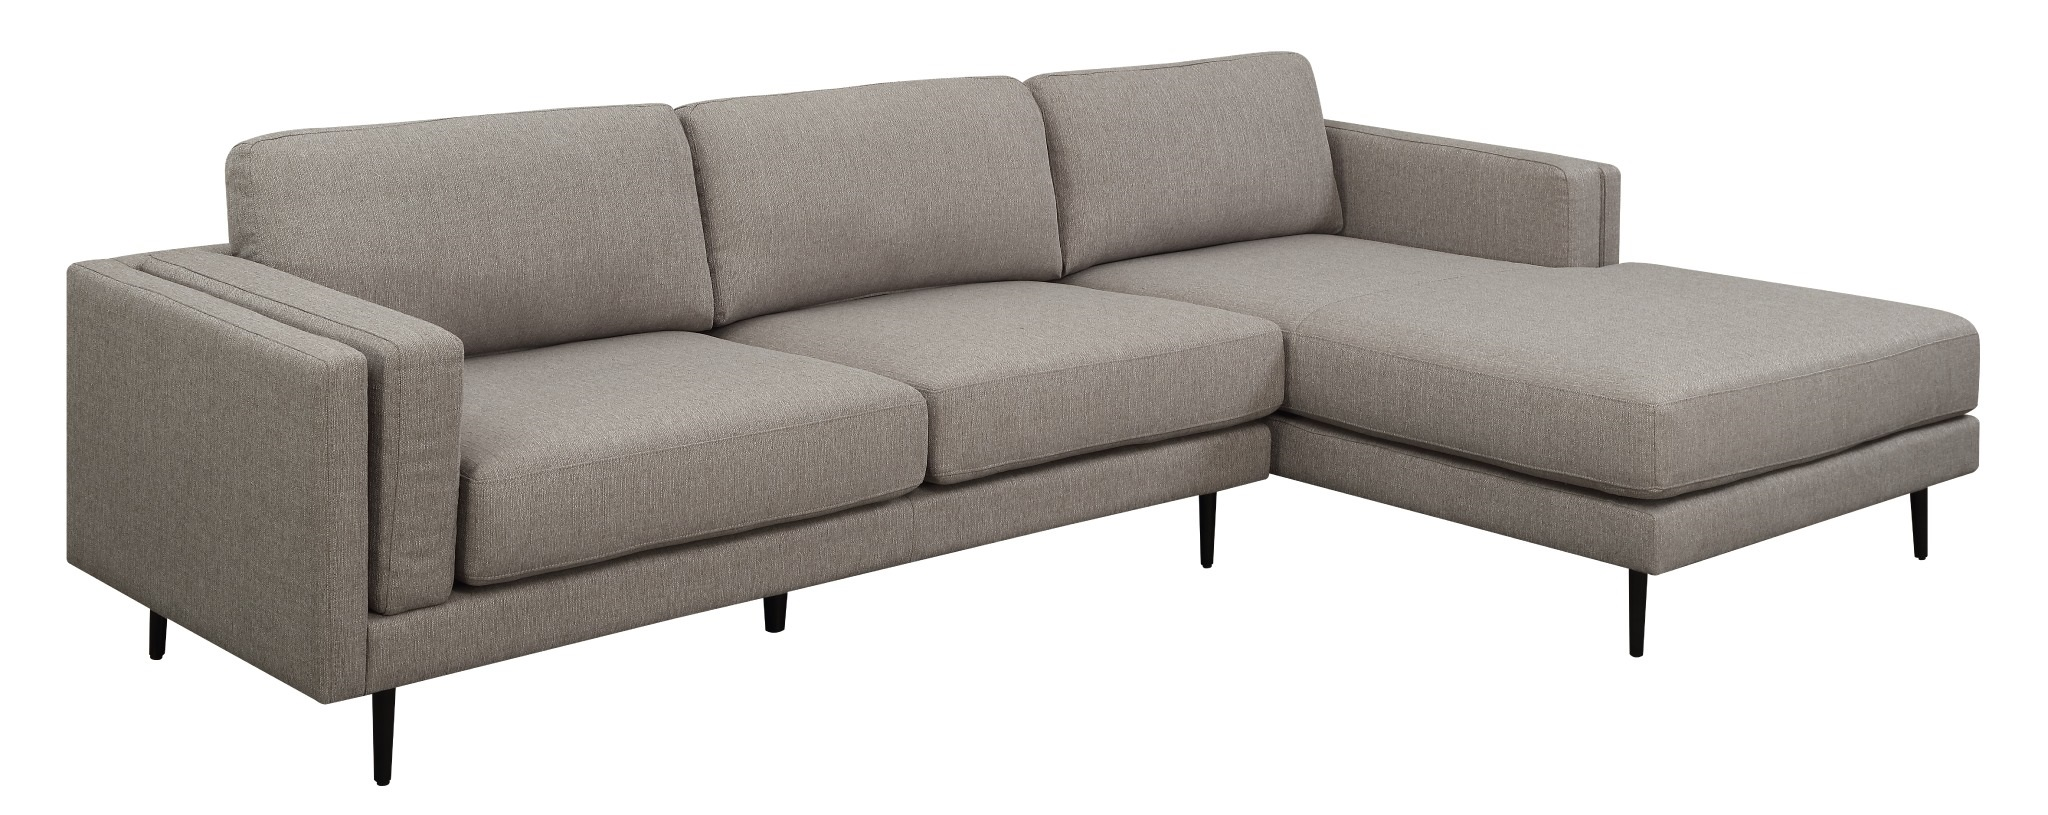 Dundas 2 seater lounge with rhf chaise hagglehuge for 2 5 seater chaise lounge